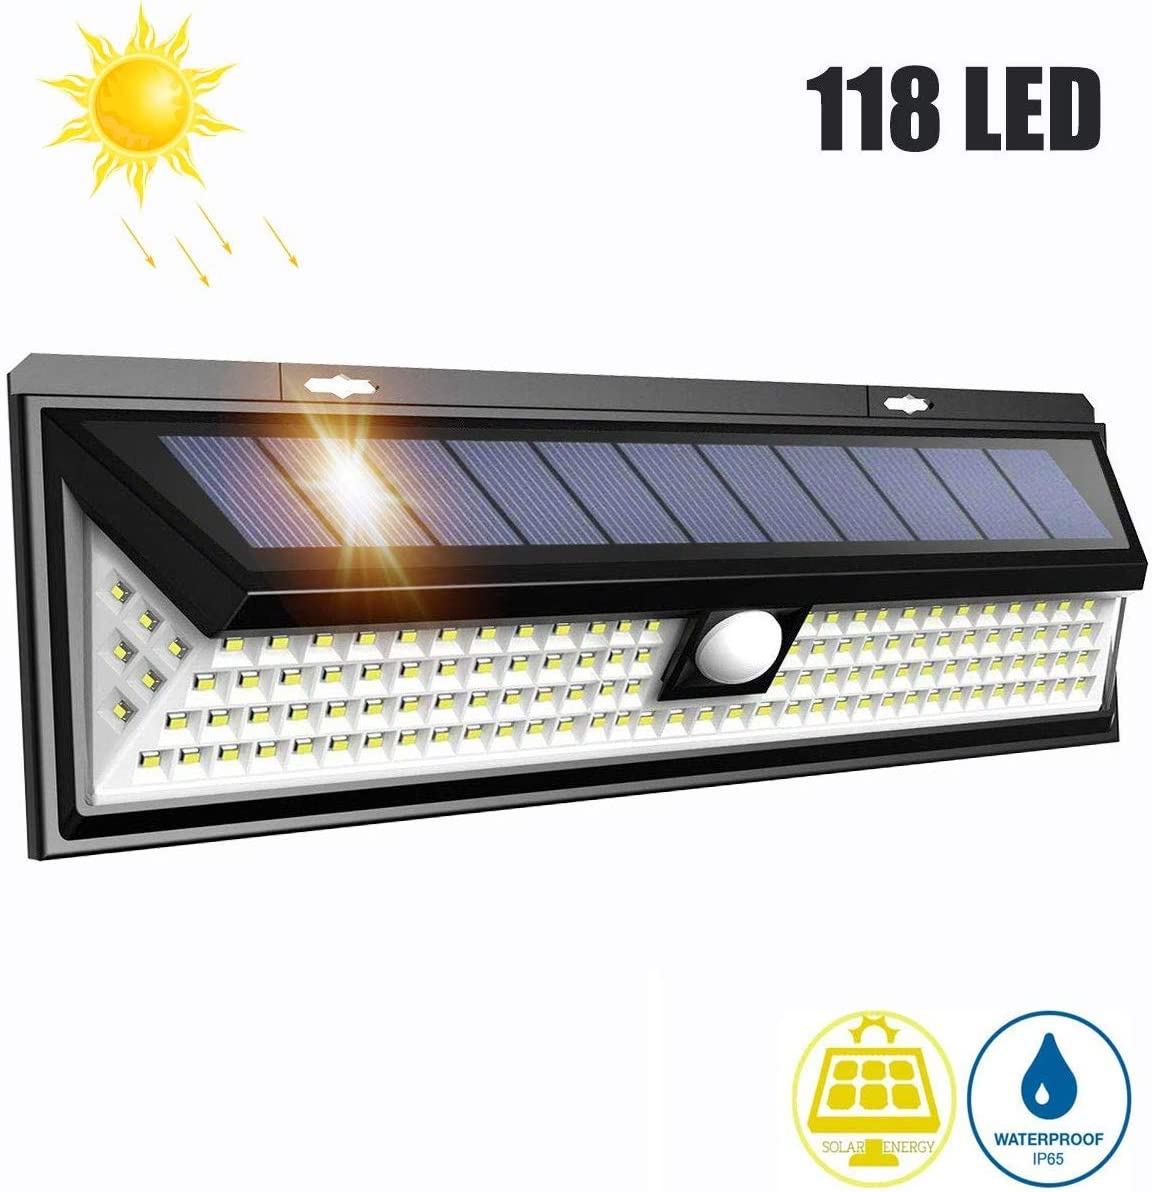 LED Lights Outdoor Security Night Light LED Solar Lights Outdoor